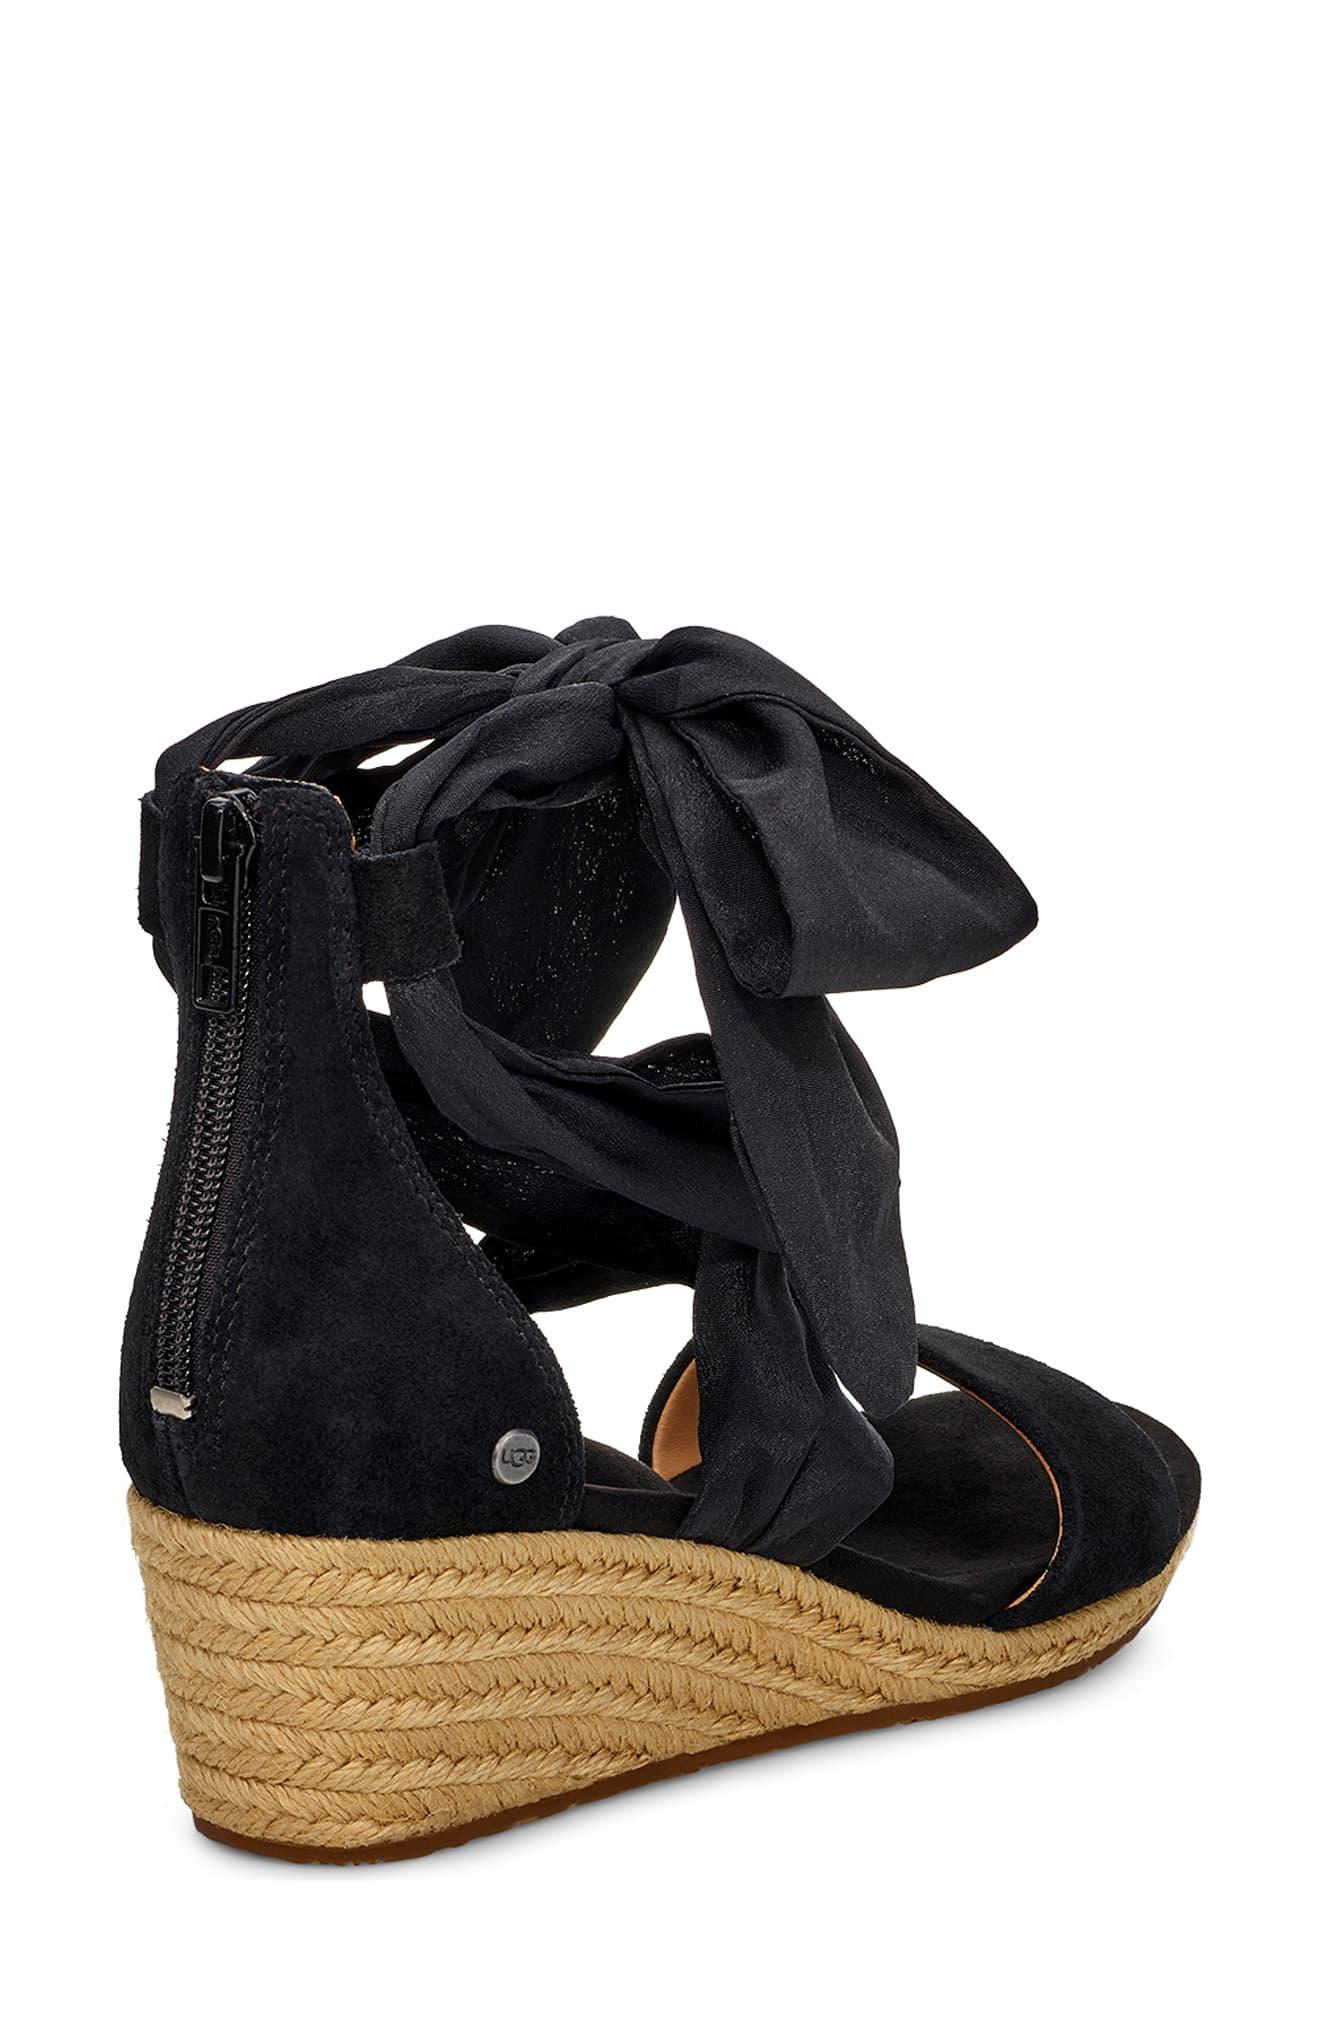 0a0ab54555c Women's Black Ugg Trina Ankle Tie Wedge Sandal